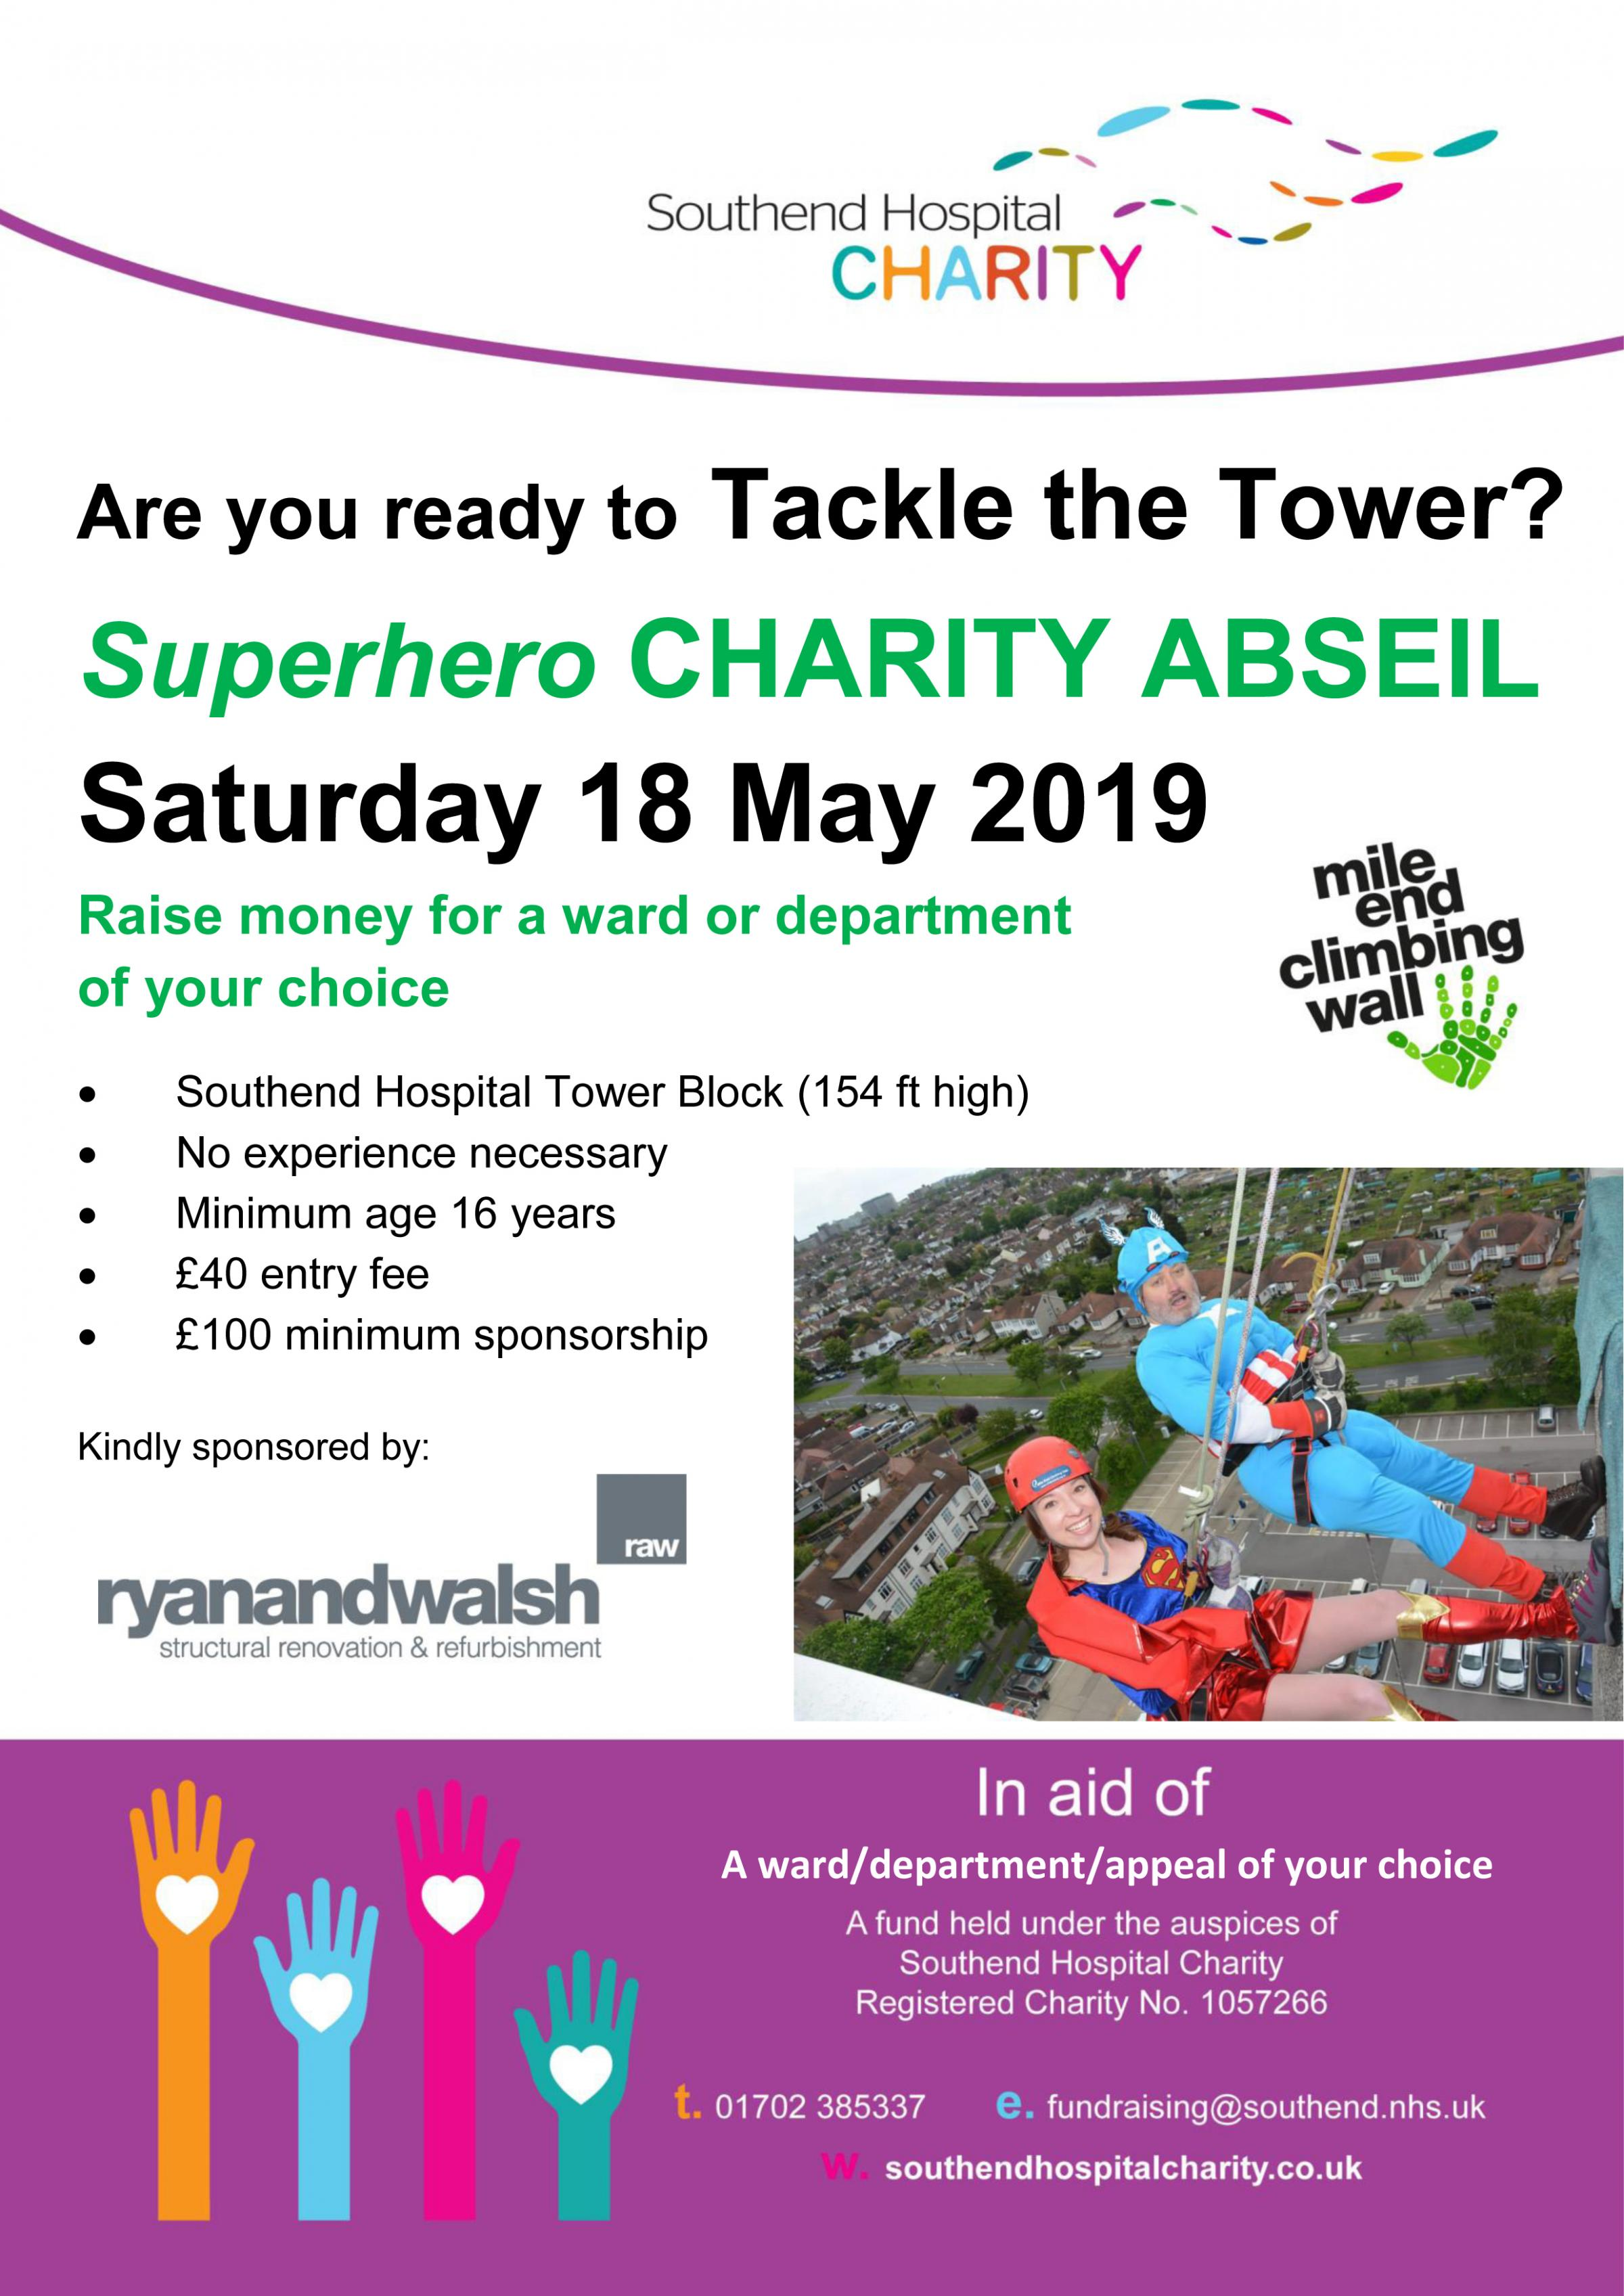 Southend Hospital Charity Abseil